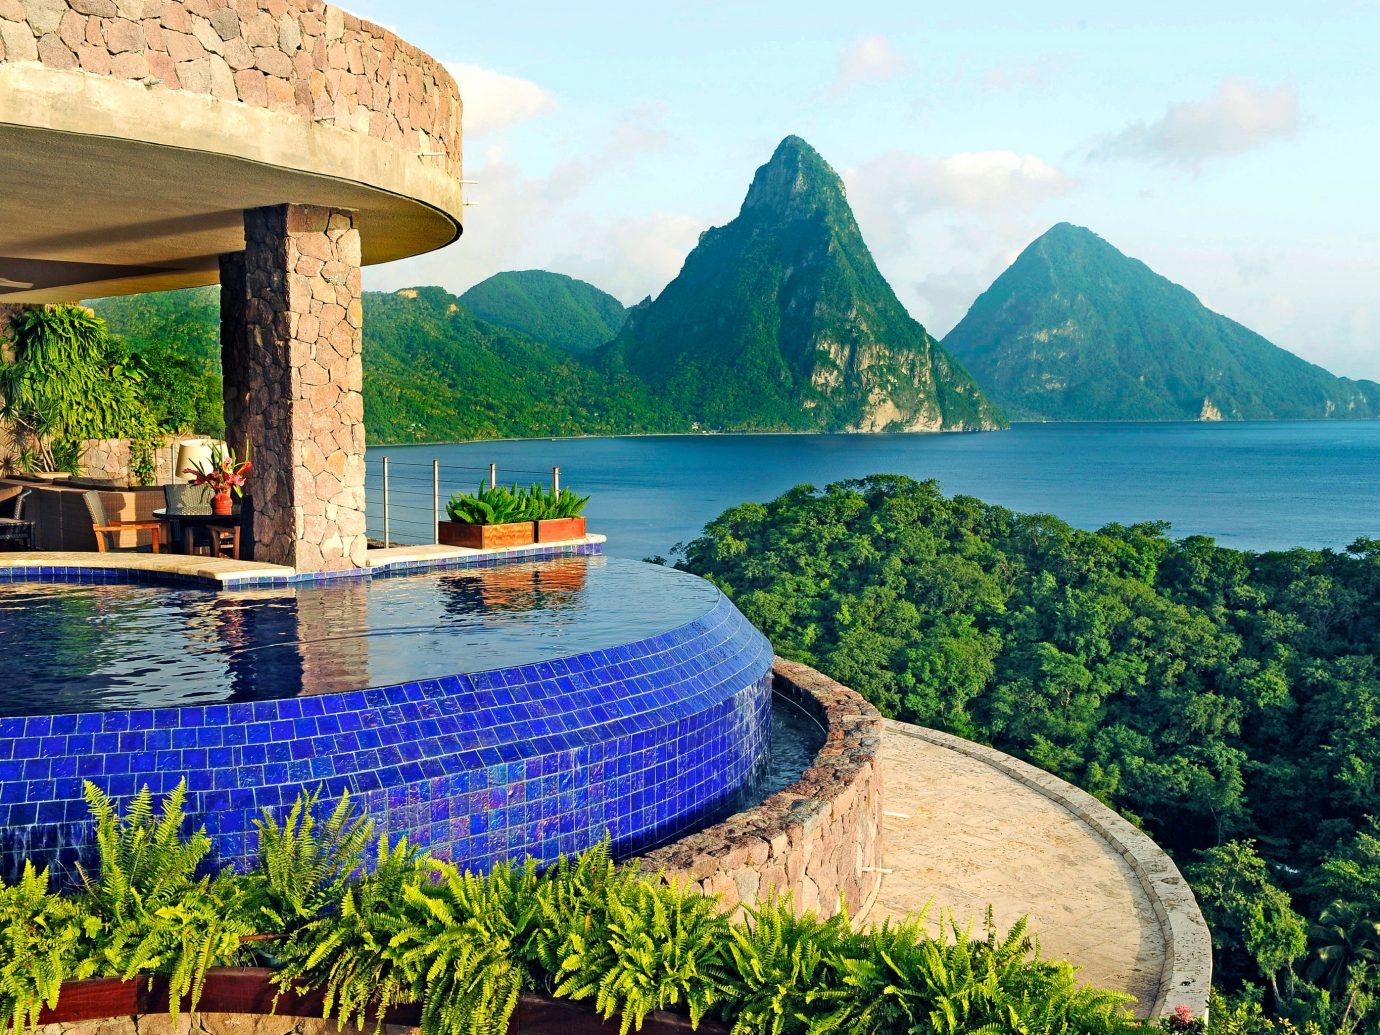 Balcony Hotels Island Jungle Luxury Pool Scenic views mountain water sky outdoor Lake Boat River vacation Sea tourism Coast estate Ocean bay landscape background Resort flower travel overlooking surrounded